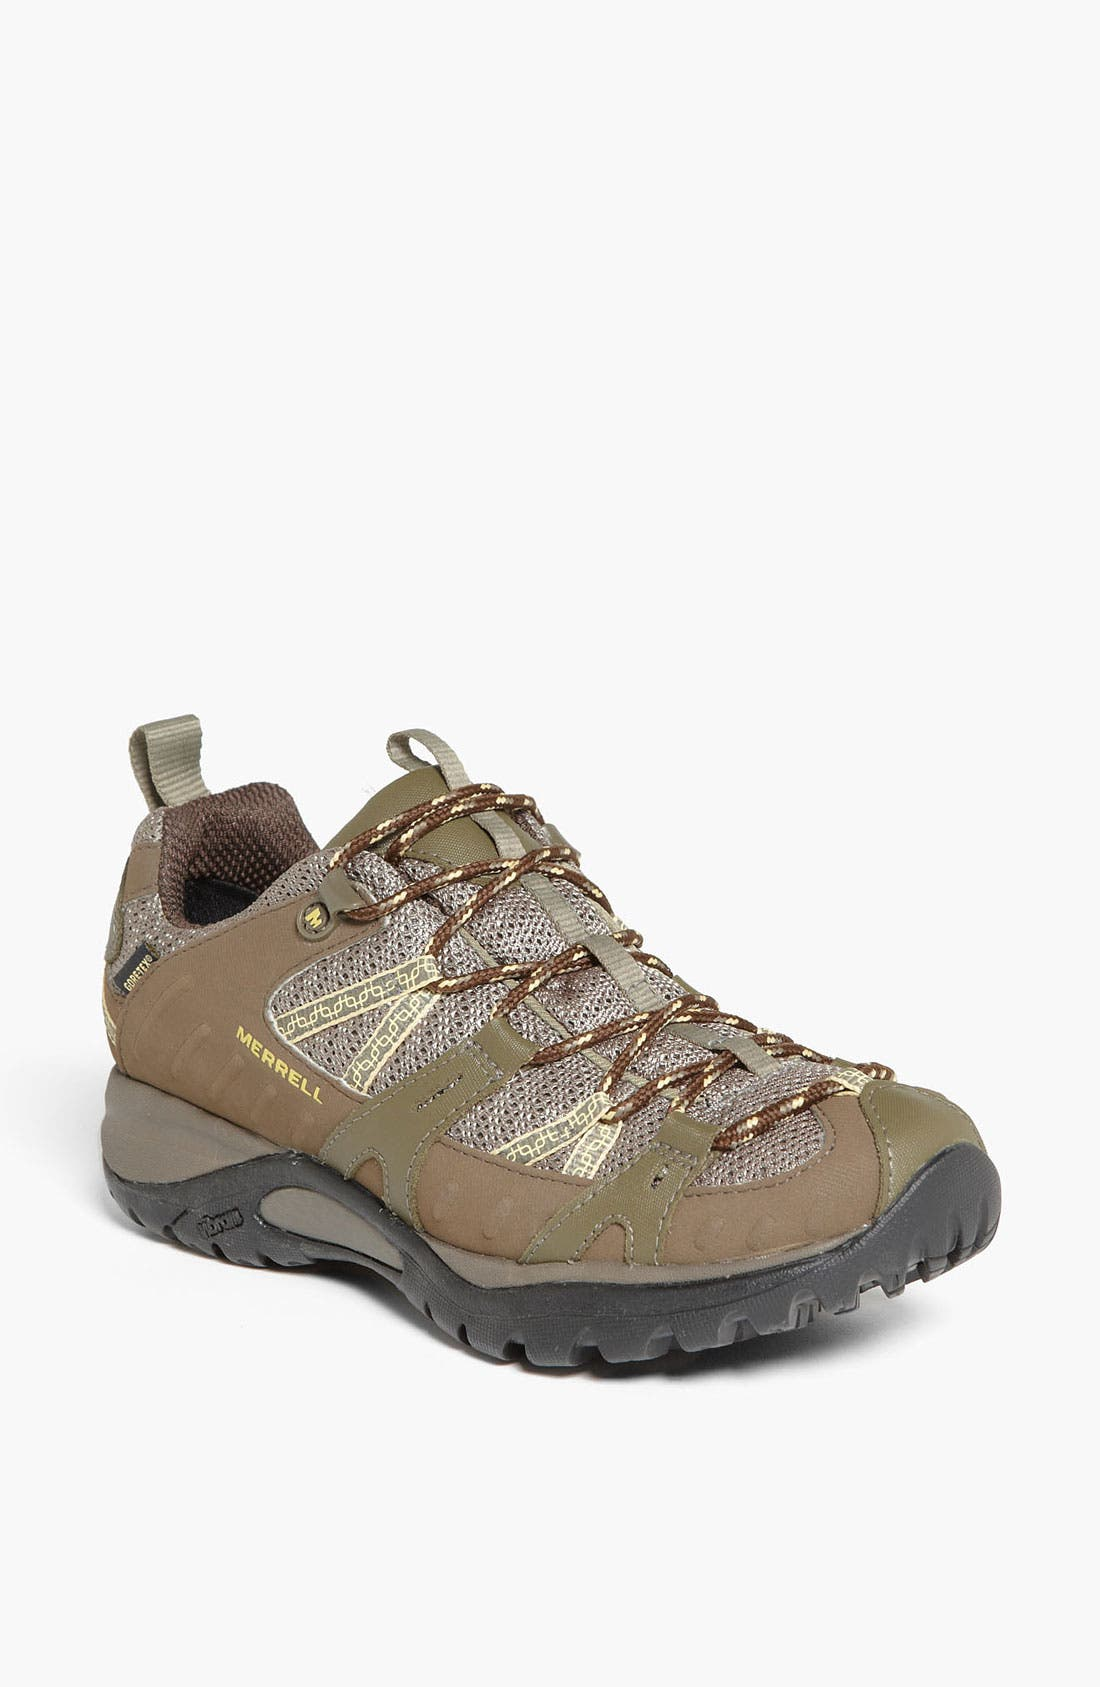 Main Image - Merrell 'Siren Sport 2' Waterproof Walking Shoe (Women)